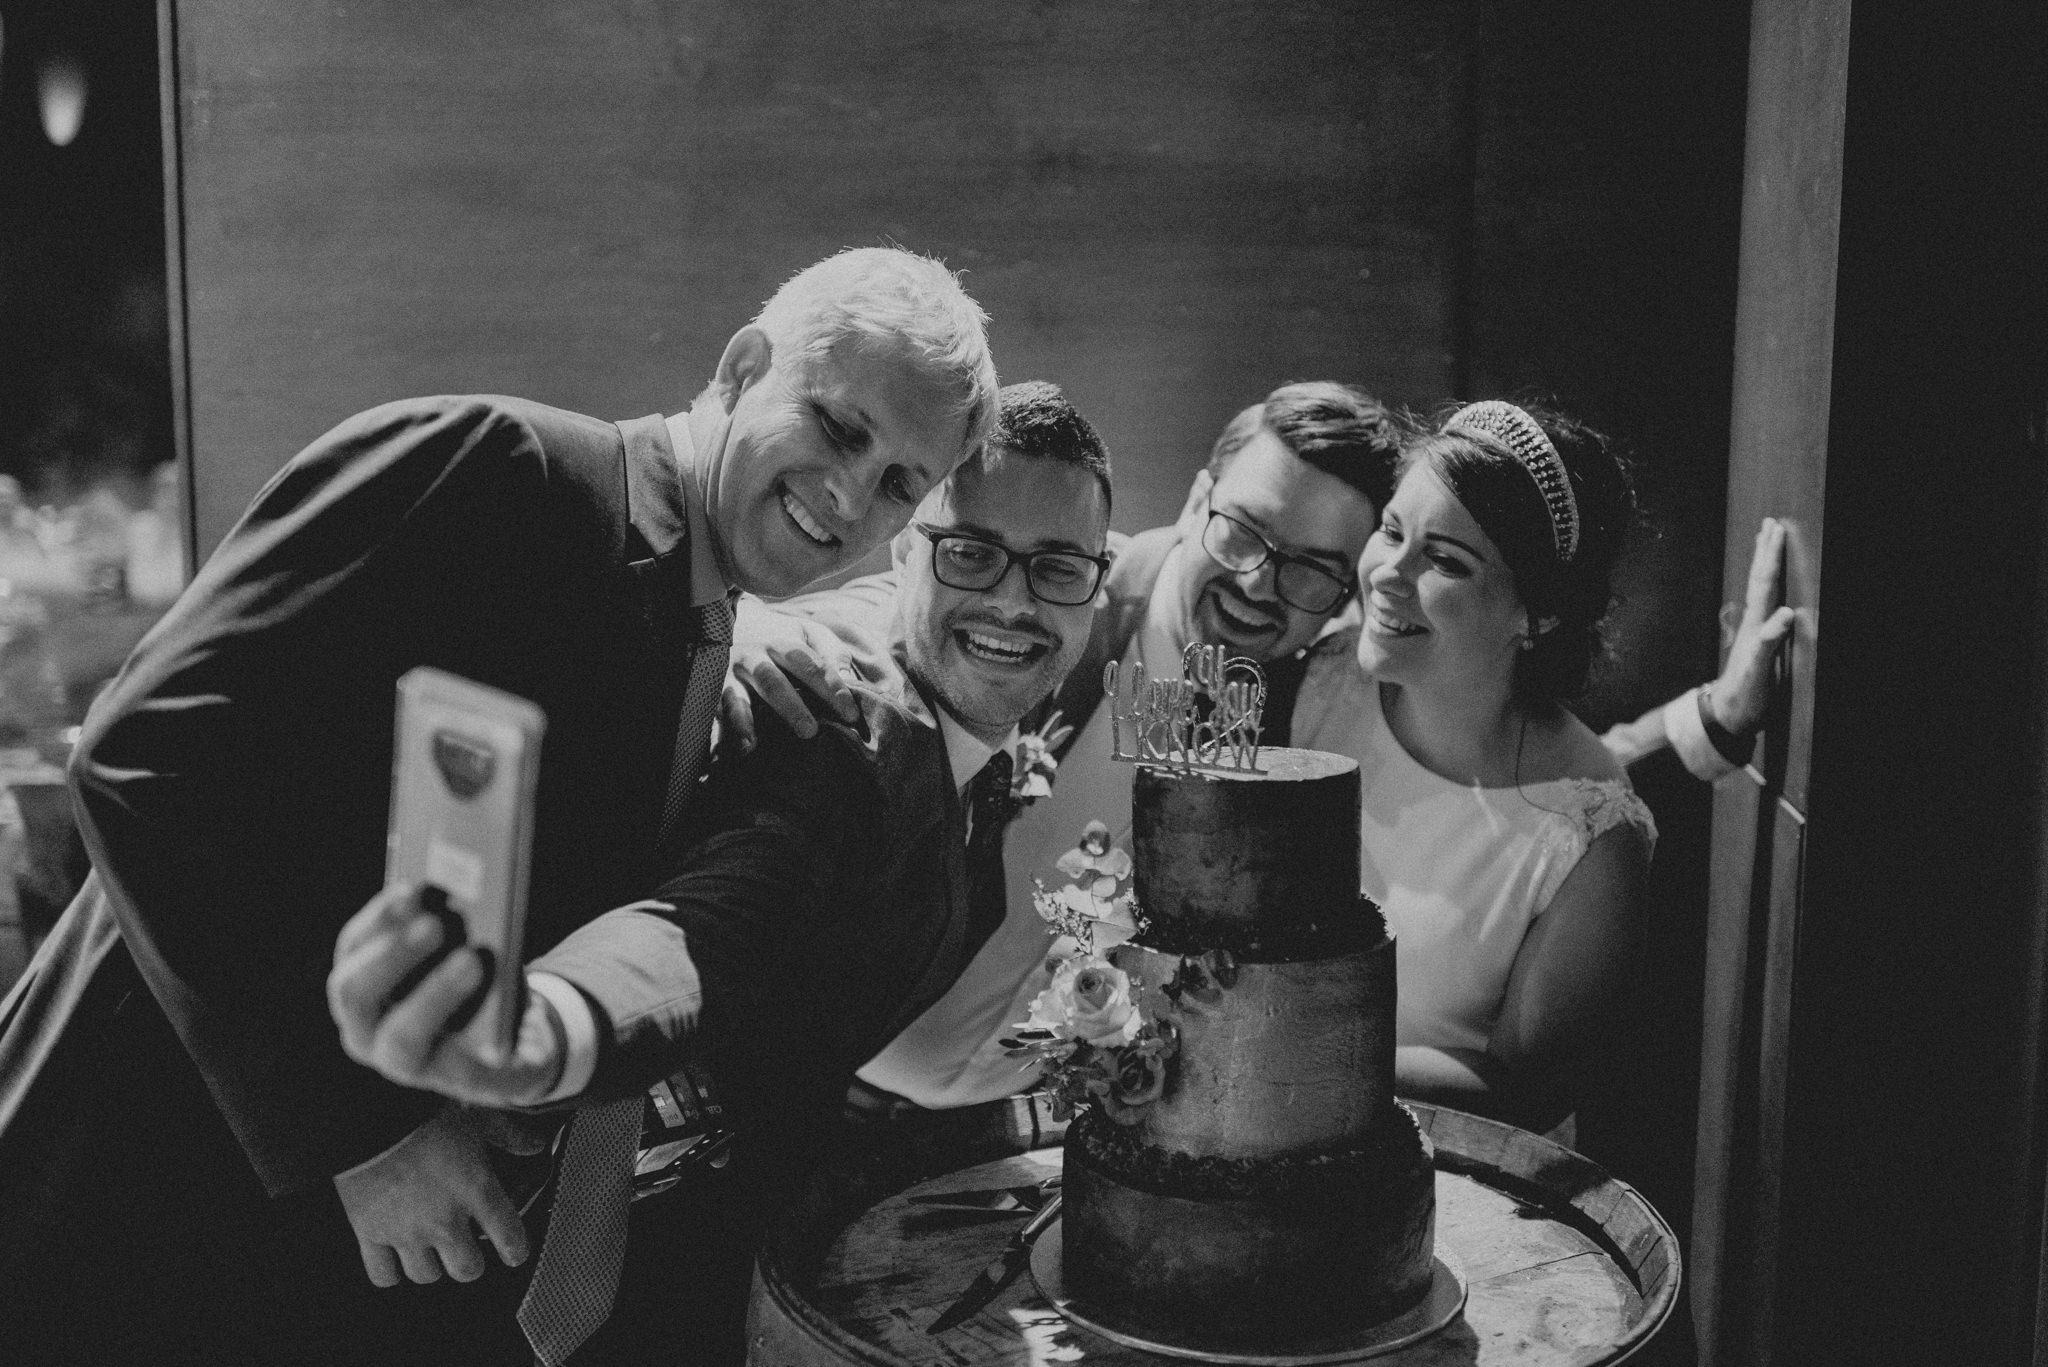 Four people laugh as they crowd together for a selfie in front of a wedding cake